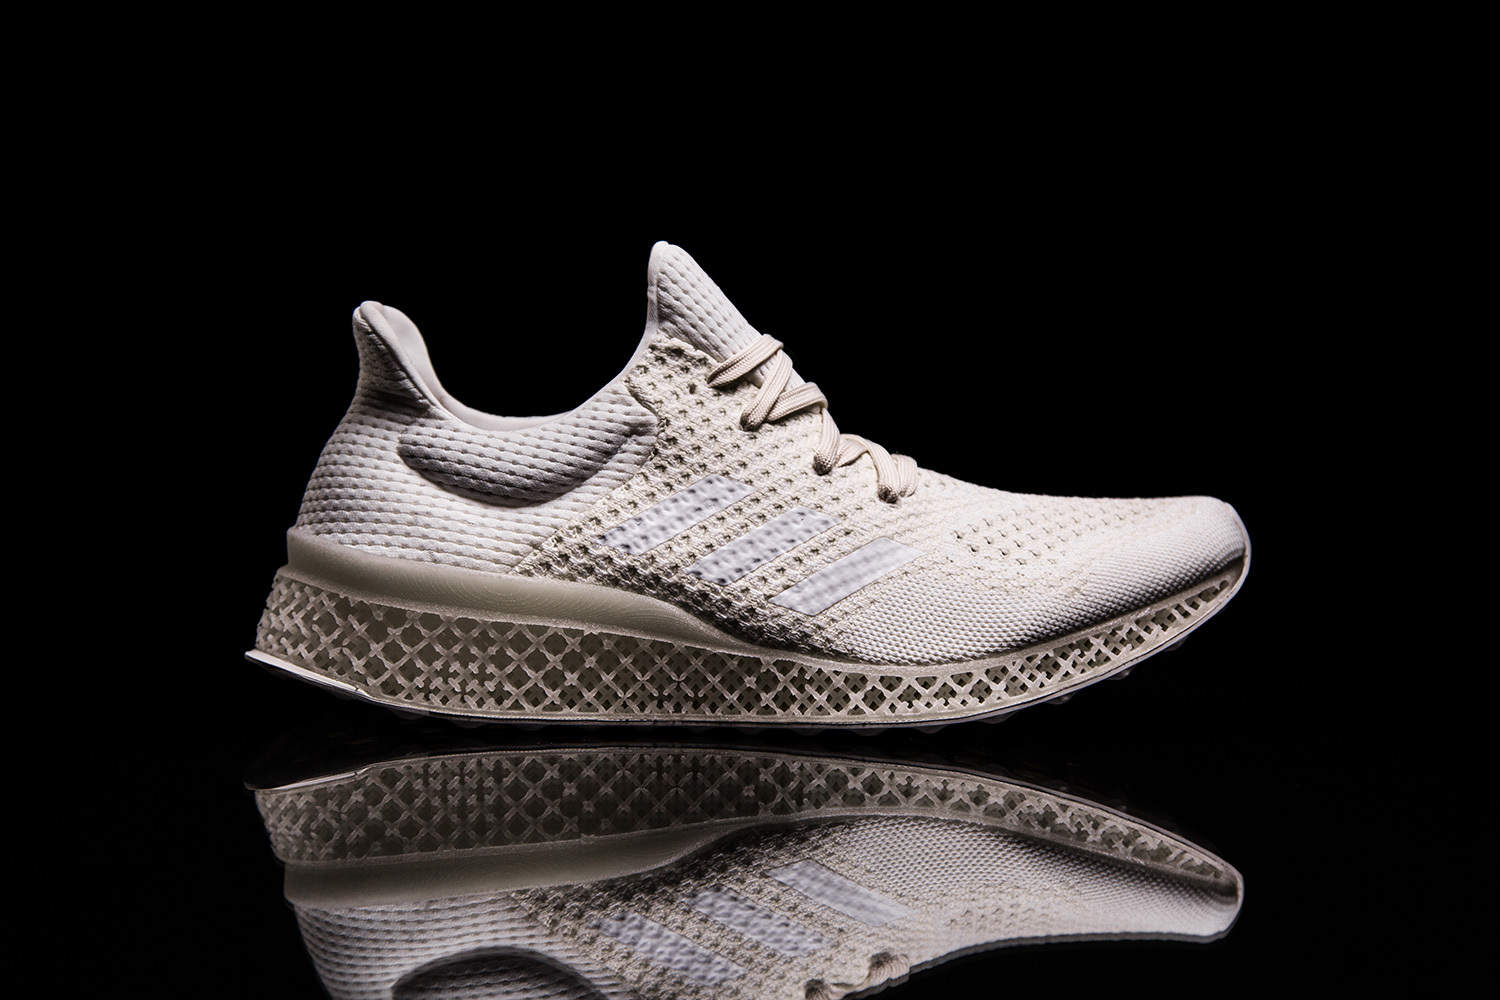 most-innovative-sneakers-2015-01